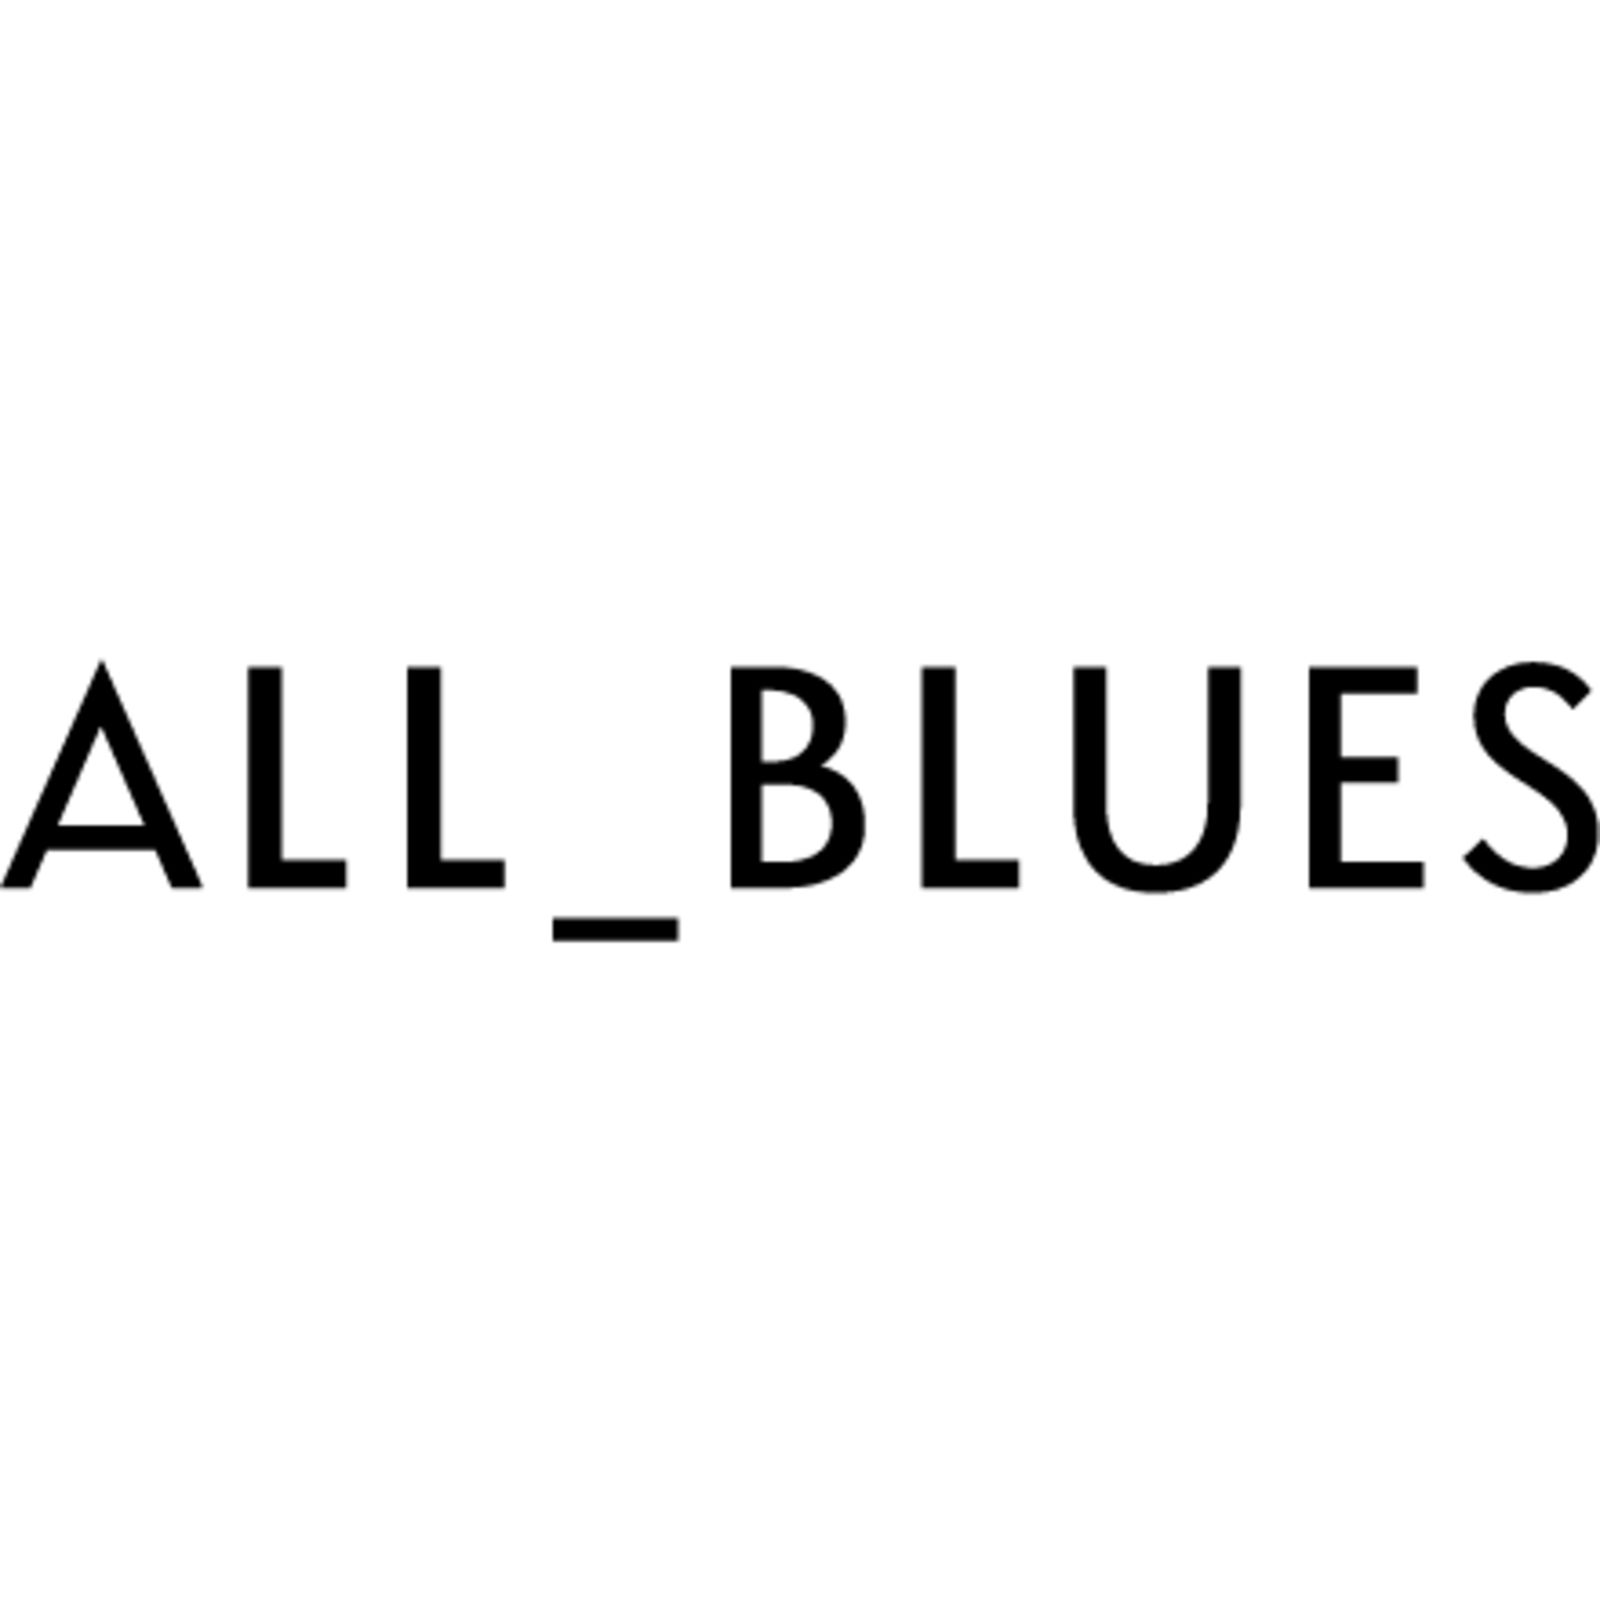 ALL BLUES